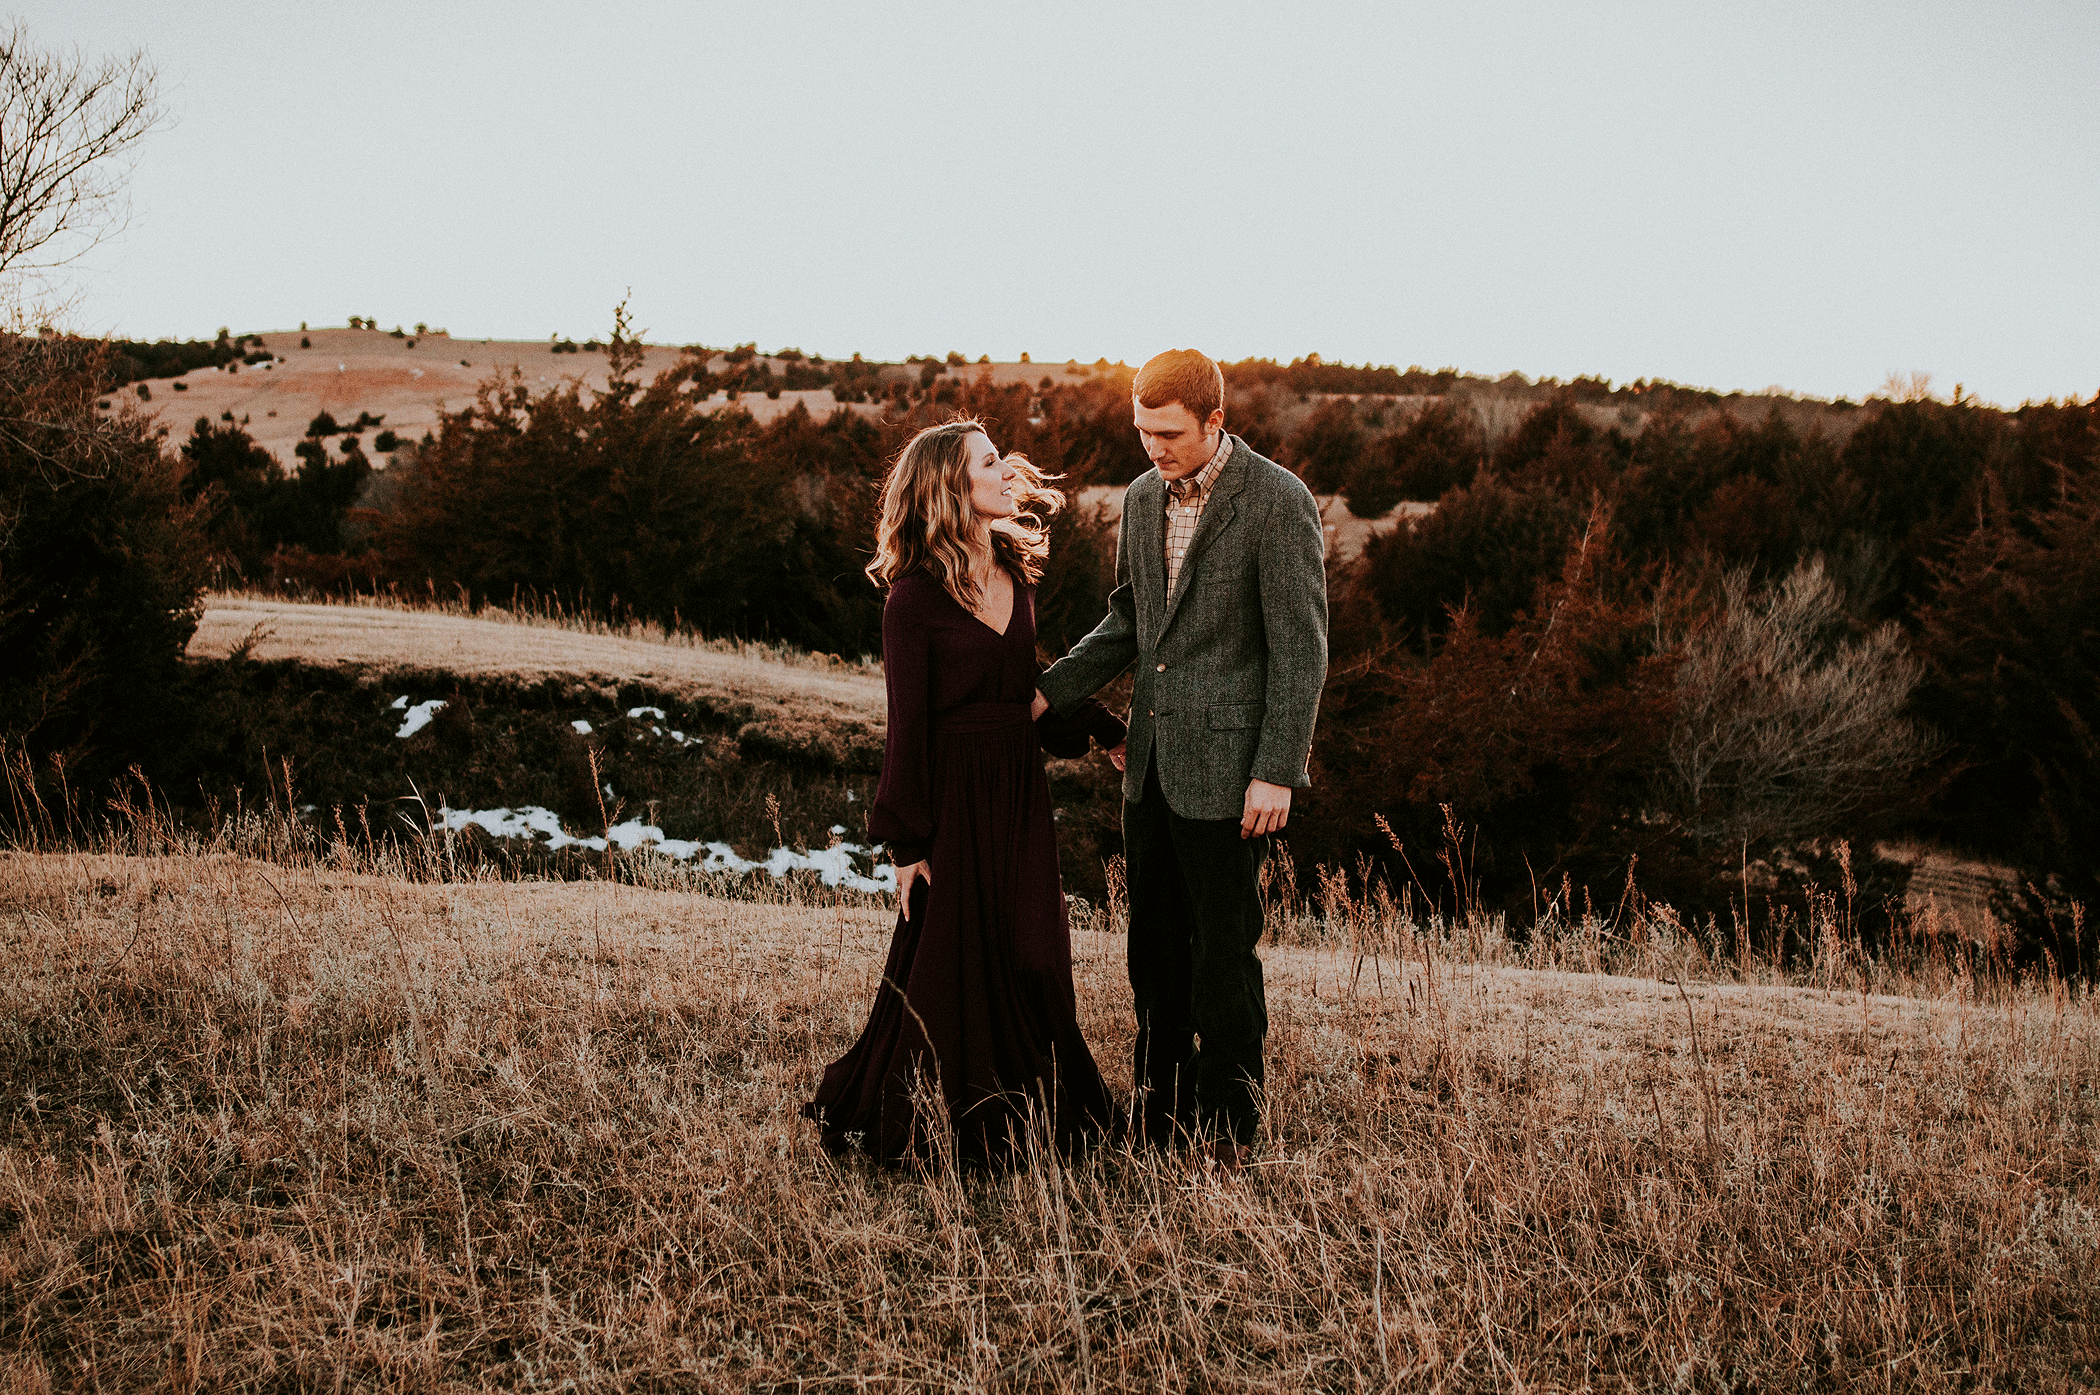 kaylie-sirek-nebraska-wedding-engagement-photographer-photography-grand-island-kearney-hastings-lincoln-51.png